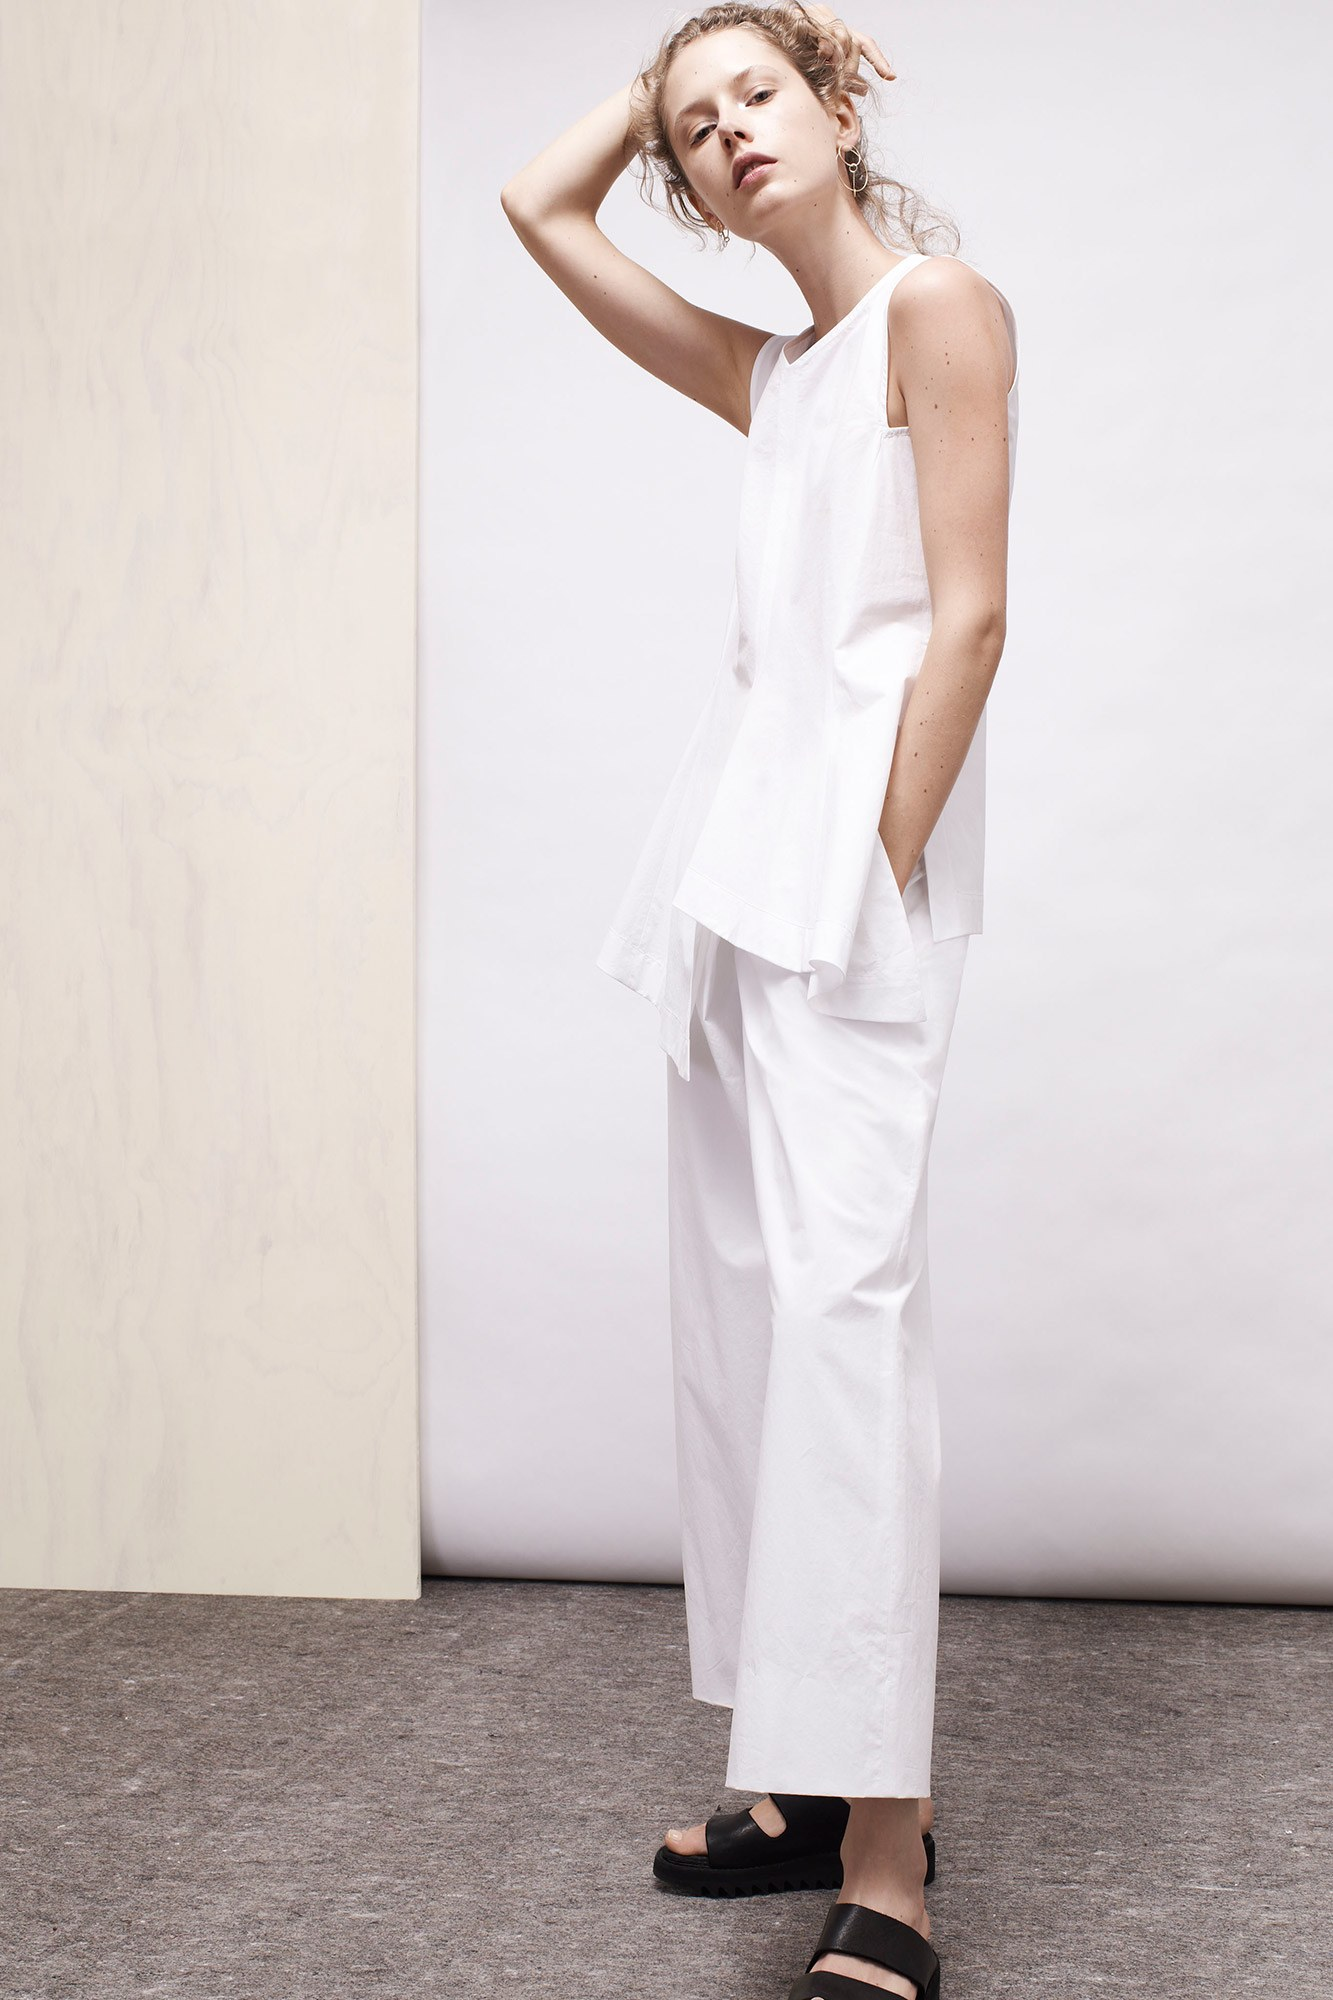 And a white one with draping on top and volume below